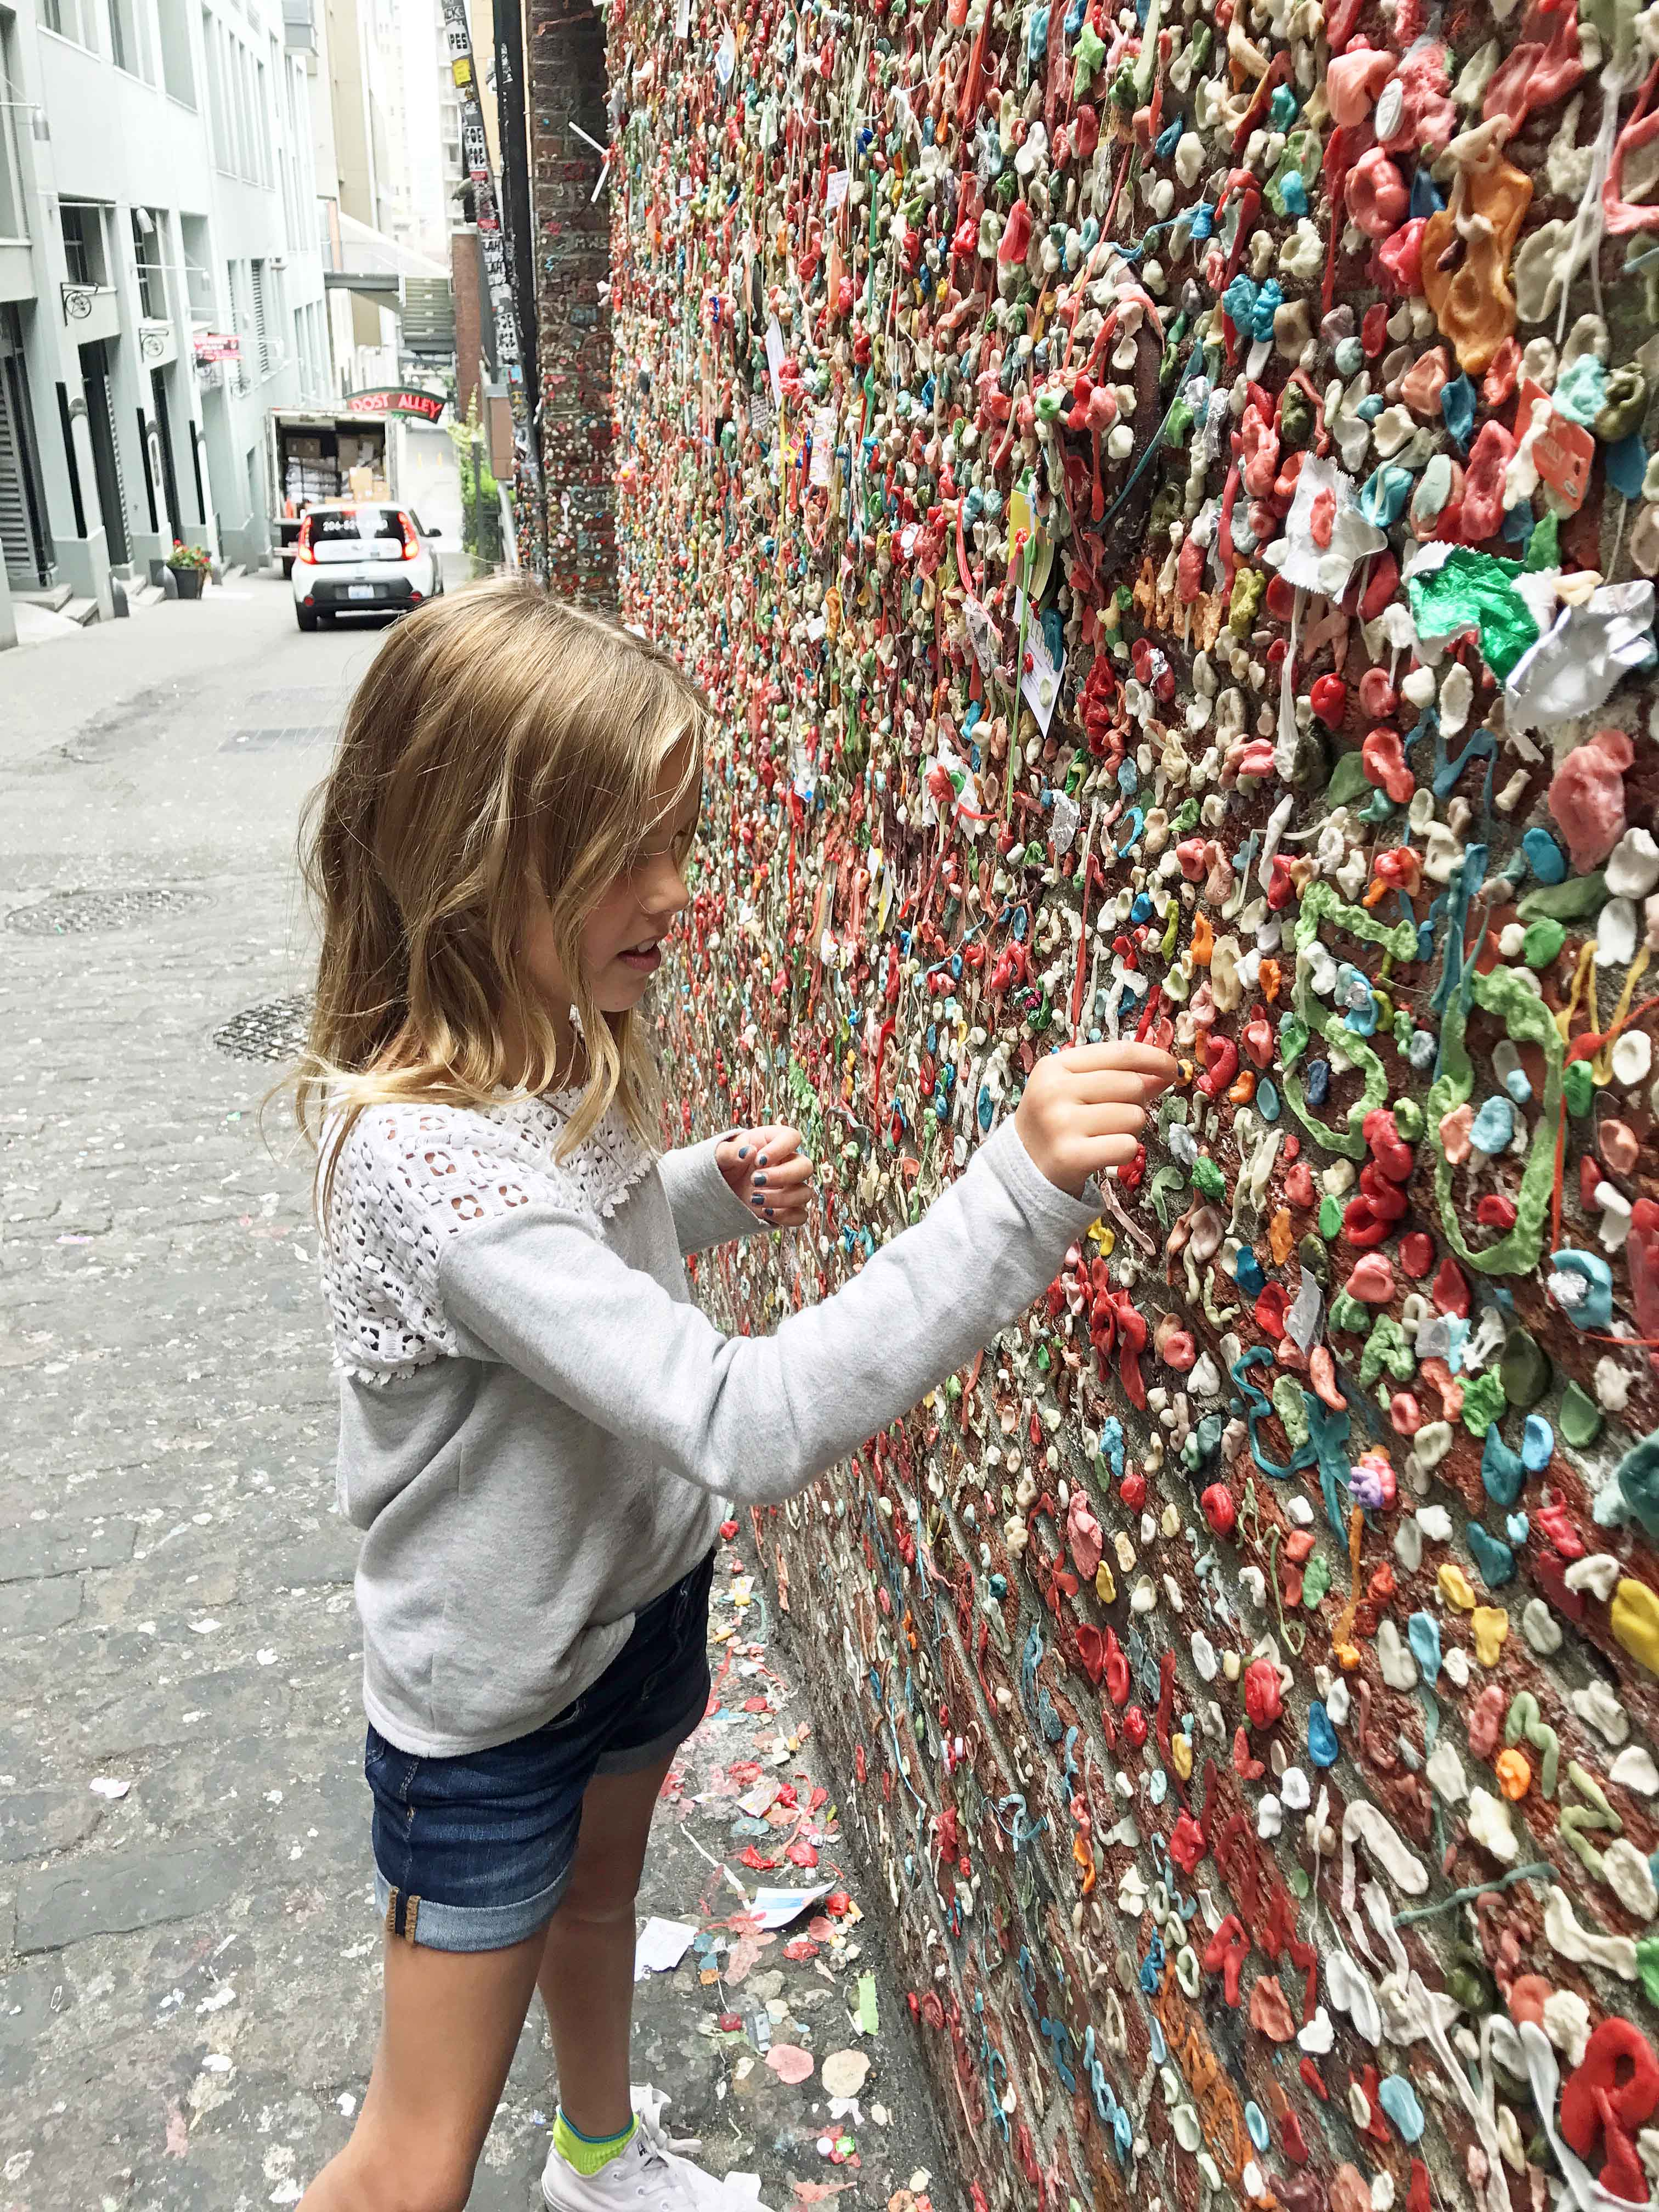 Famous Gum Wall at Pike Place Market. Best Places to Eat and See in Seattle. The most popular spots to visit and the best restaurants. Tips on the best places to see in Seattle Washington. www.modernhoney.com